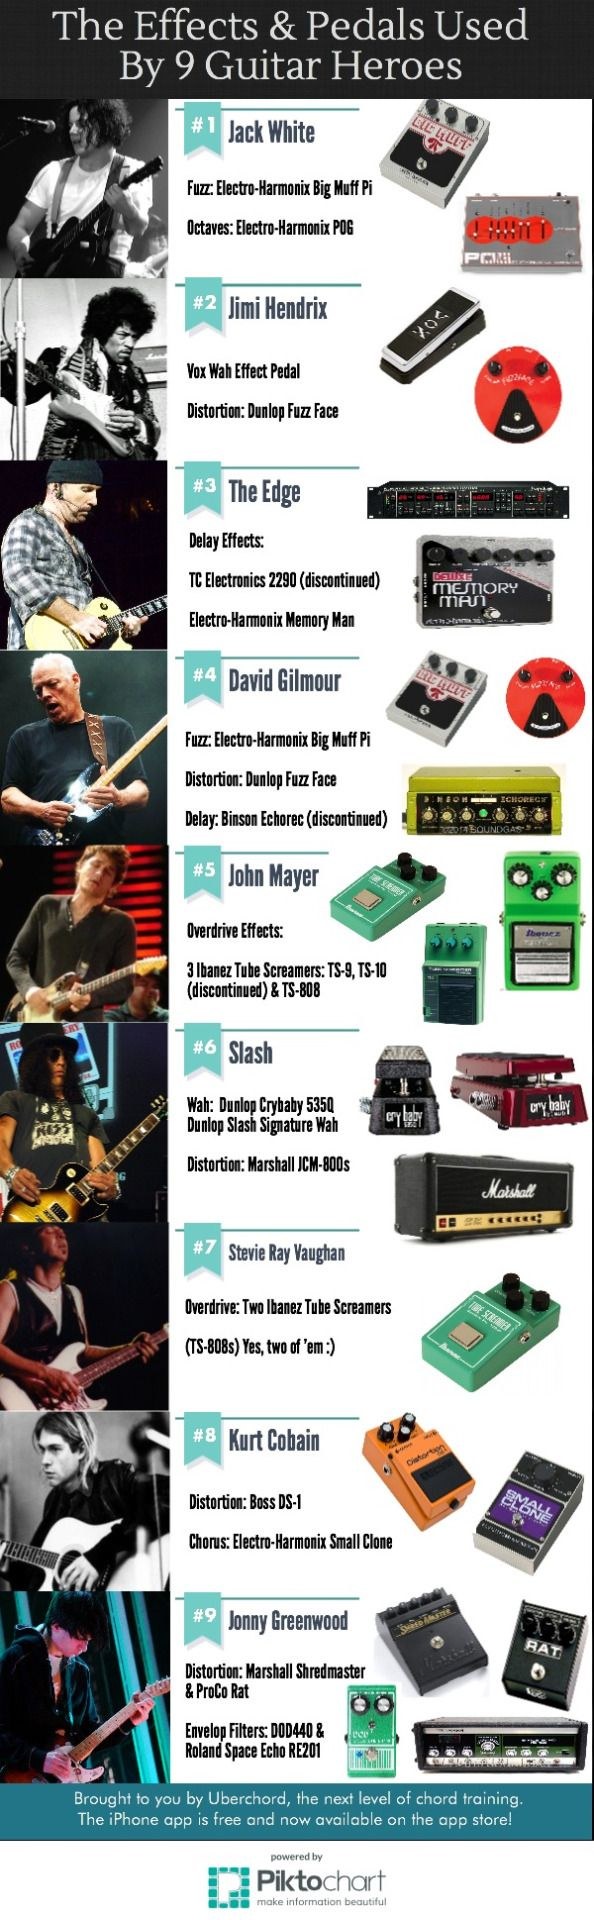 "uberchord: "" Which pedals and effects are your favorite guitar heroes using? We've rounded up some of the most notable effects used by 9 top guitarists including Slash, Jimi Hendrix, Kurt Cobain and..."